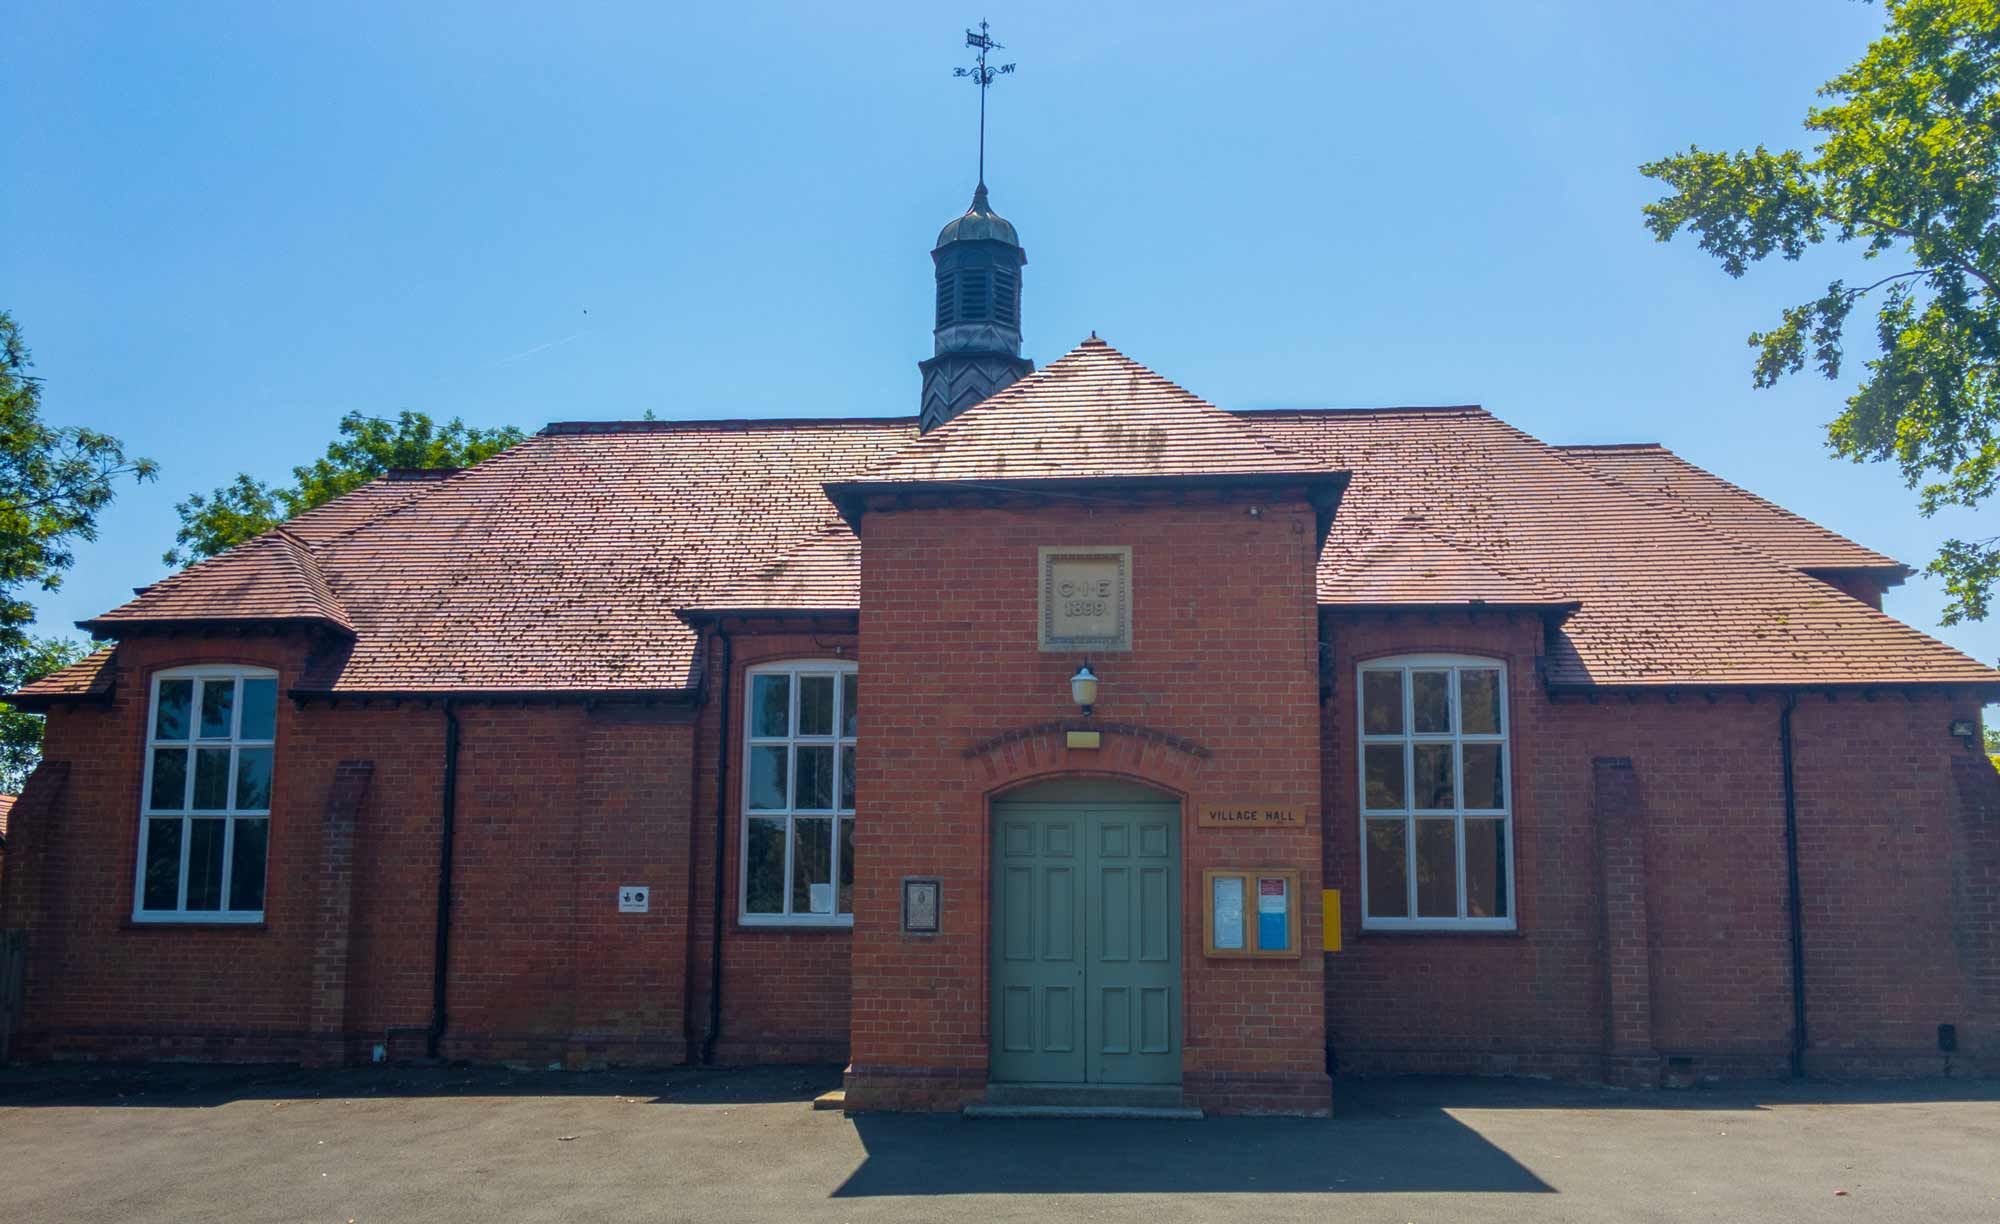 Exterior of Dumbleton Village Hall from front